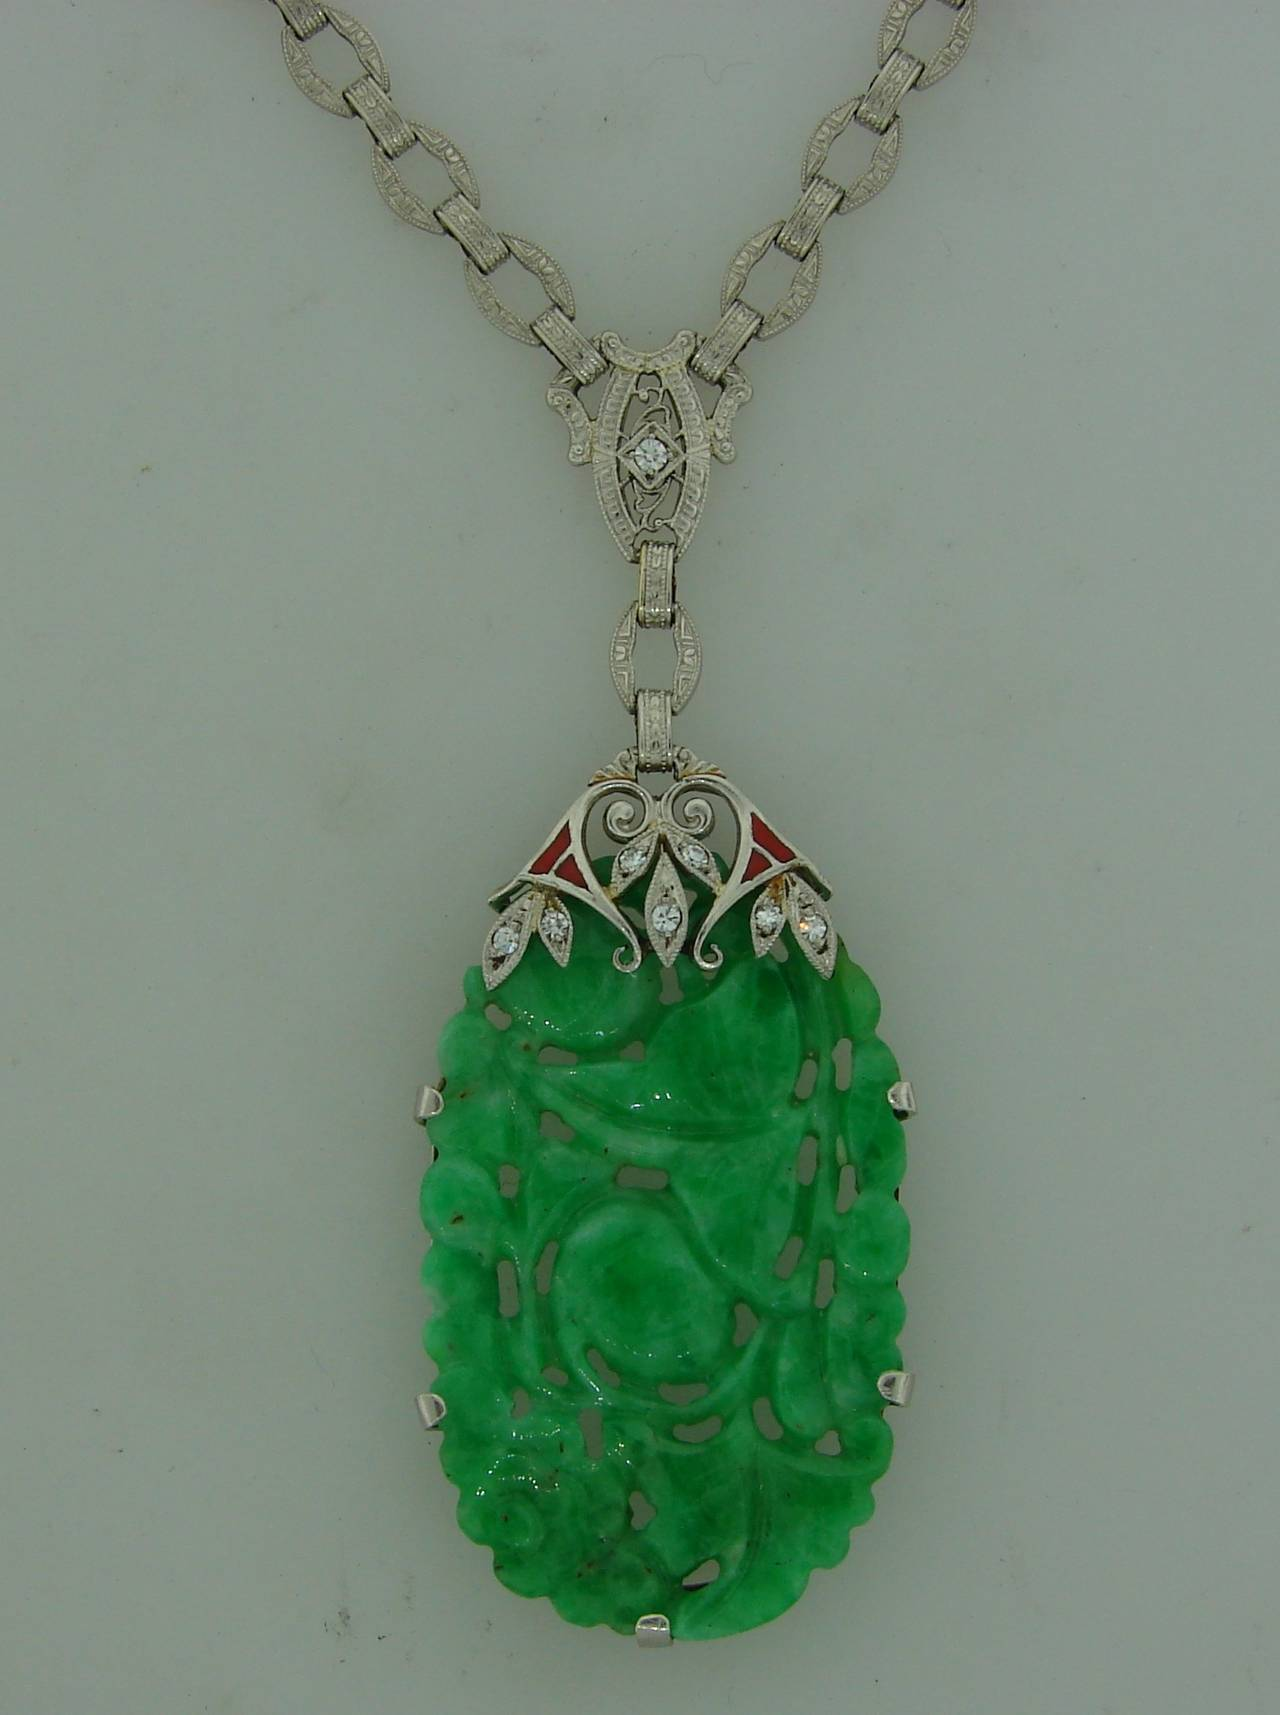 king fit choy jade a have covered remarkable the bok discovered pendant paper carved archaeologists on help custom for